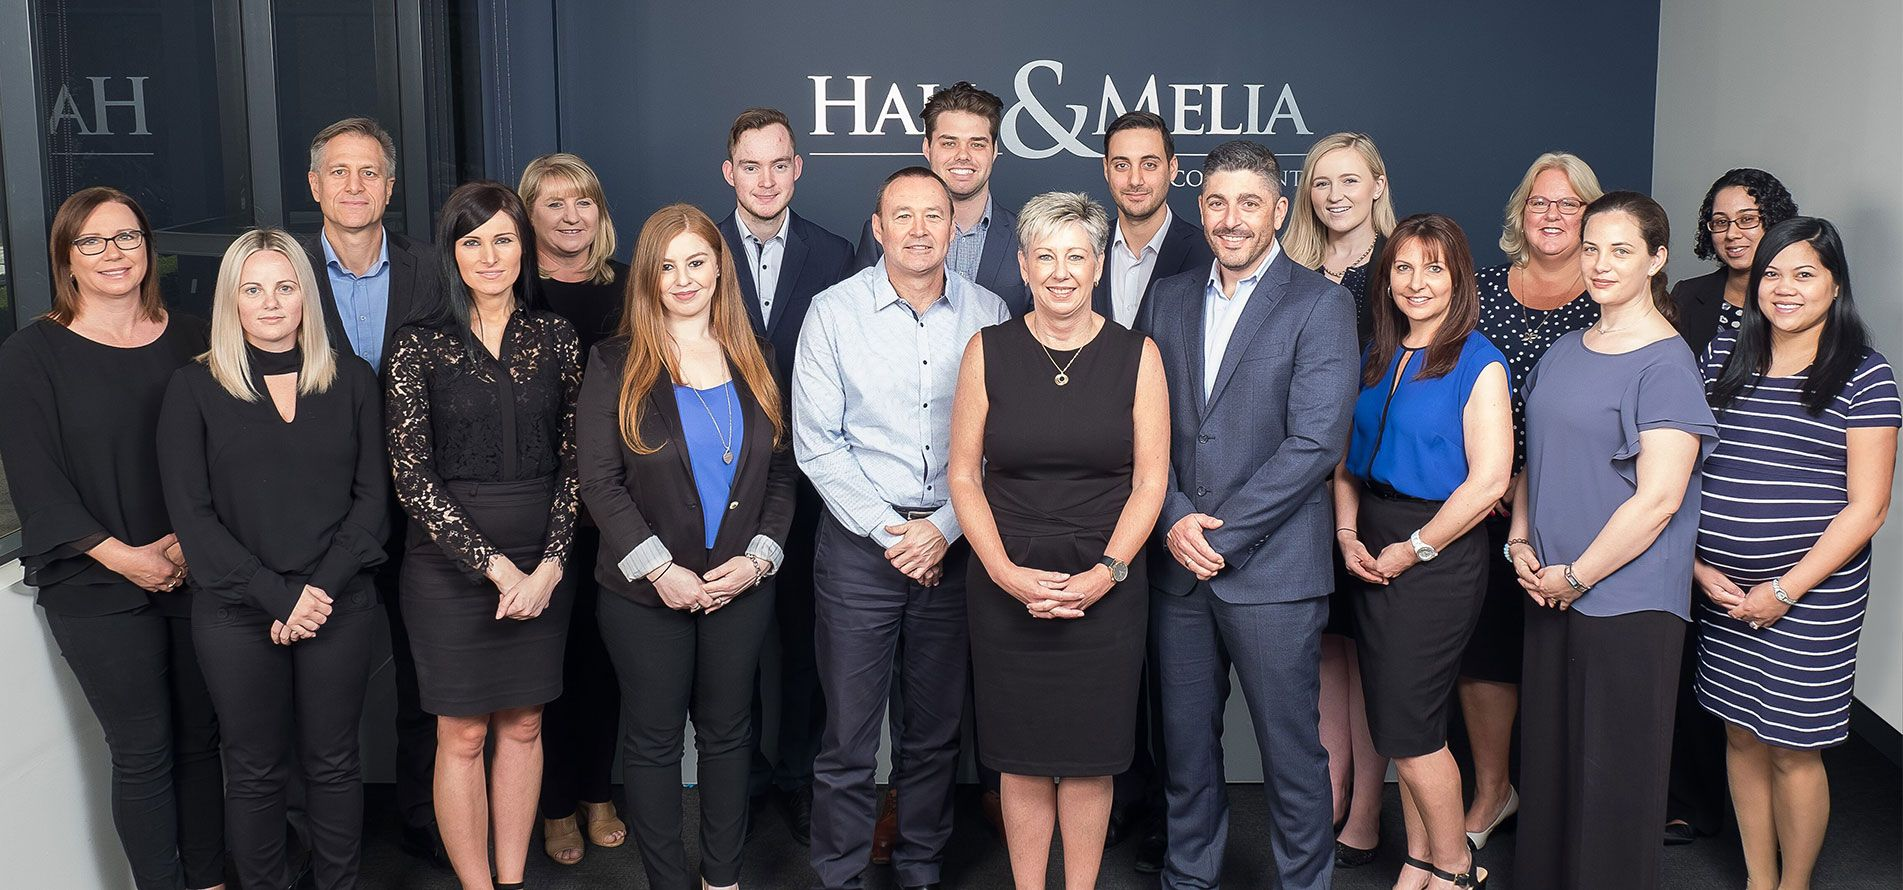 Hall & Melia Accountants